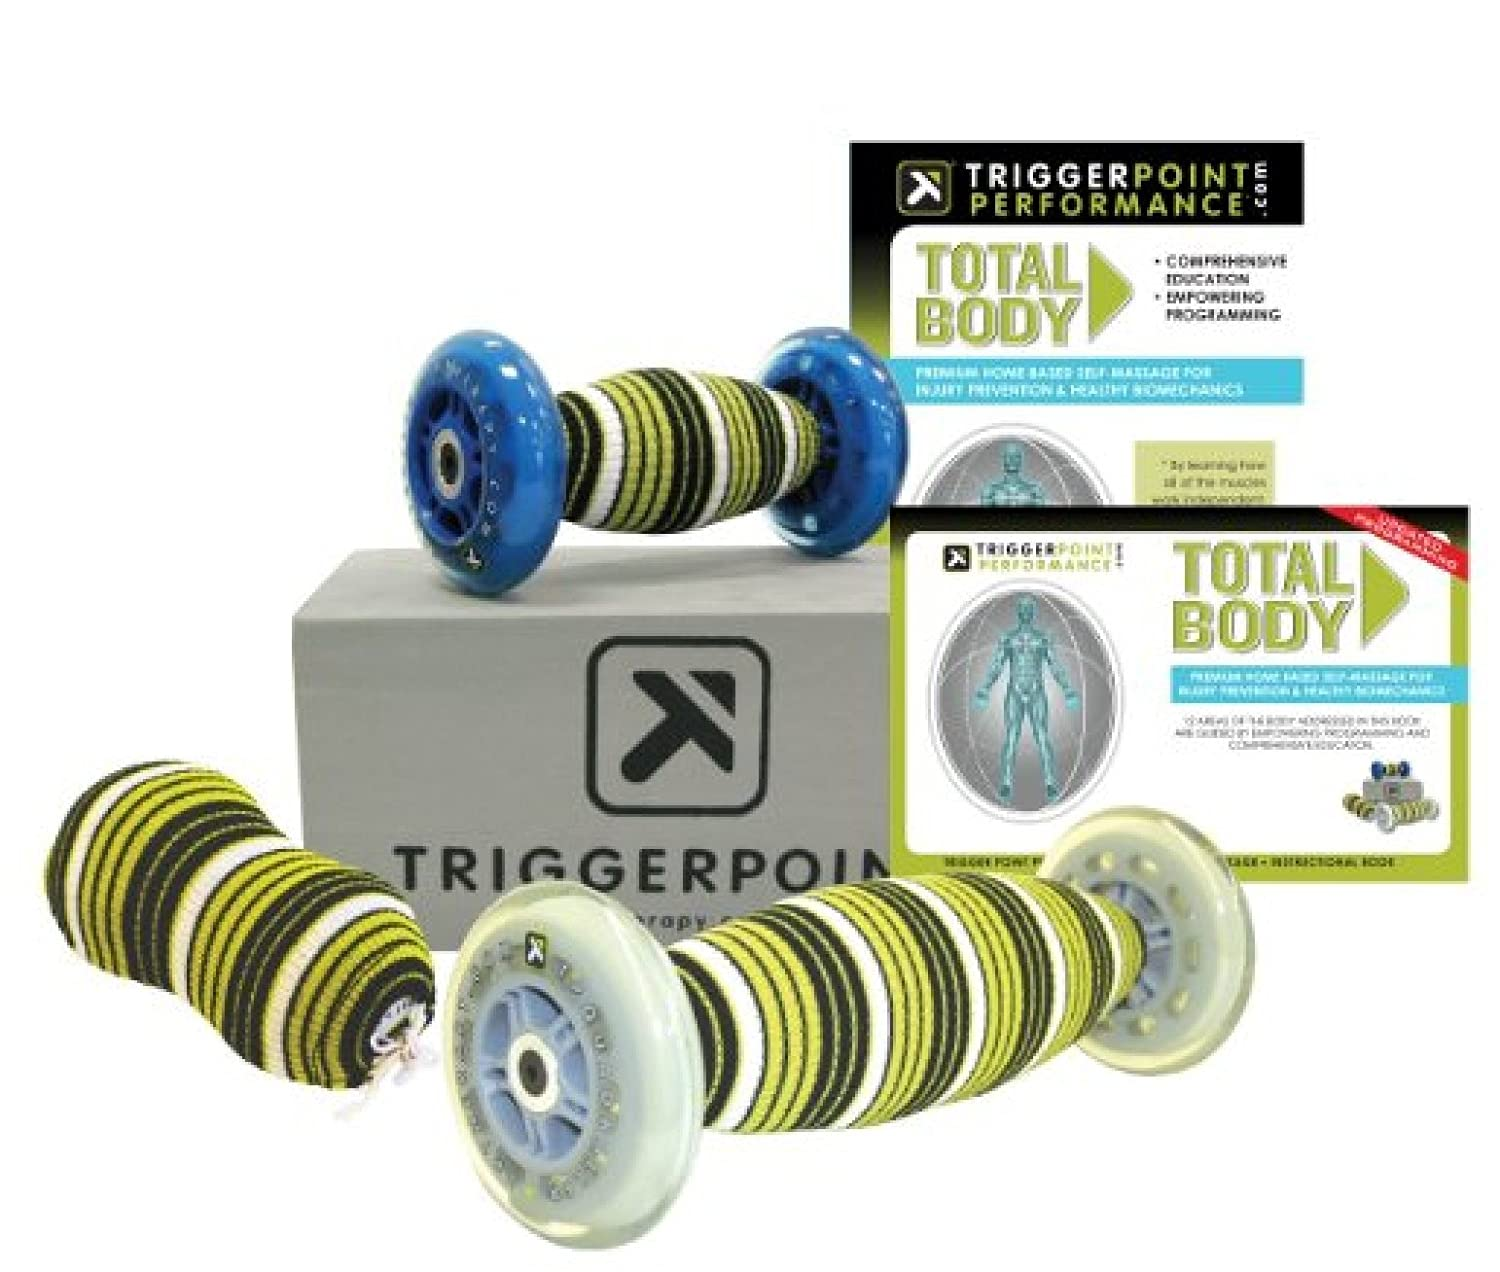 Trigger Point Performance Total Body Self-Myofascial Release and Deep Tissue Massage Kit with Instructional DVD and Guidebook [並行輸入品]   B00X1PC5AE